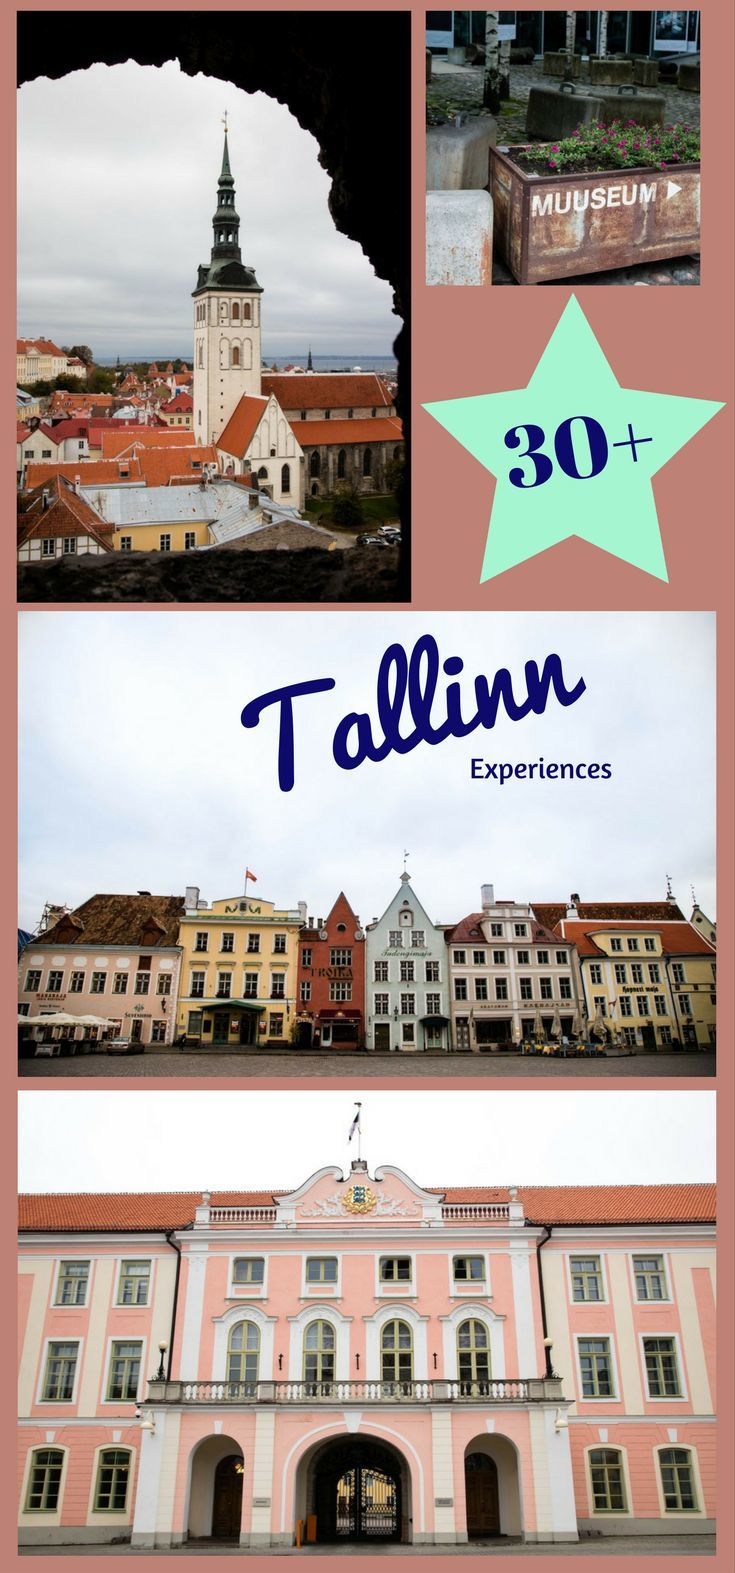 Towers and cobblestones, captial cities don't come quainter than Tallinn in Estonia